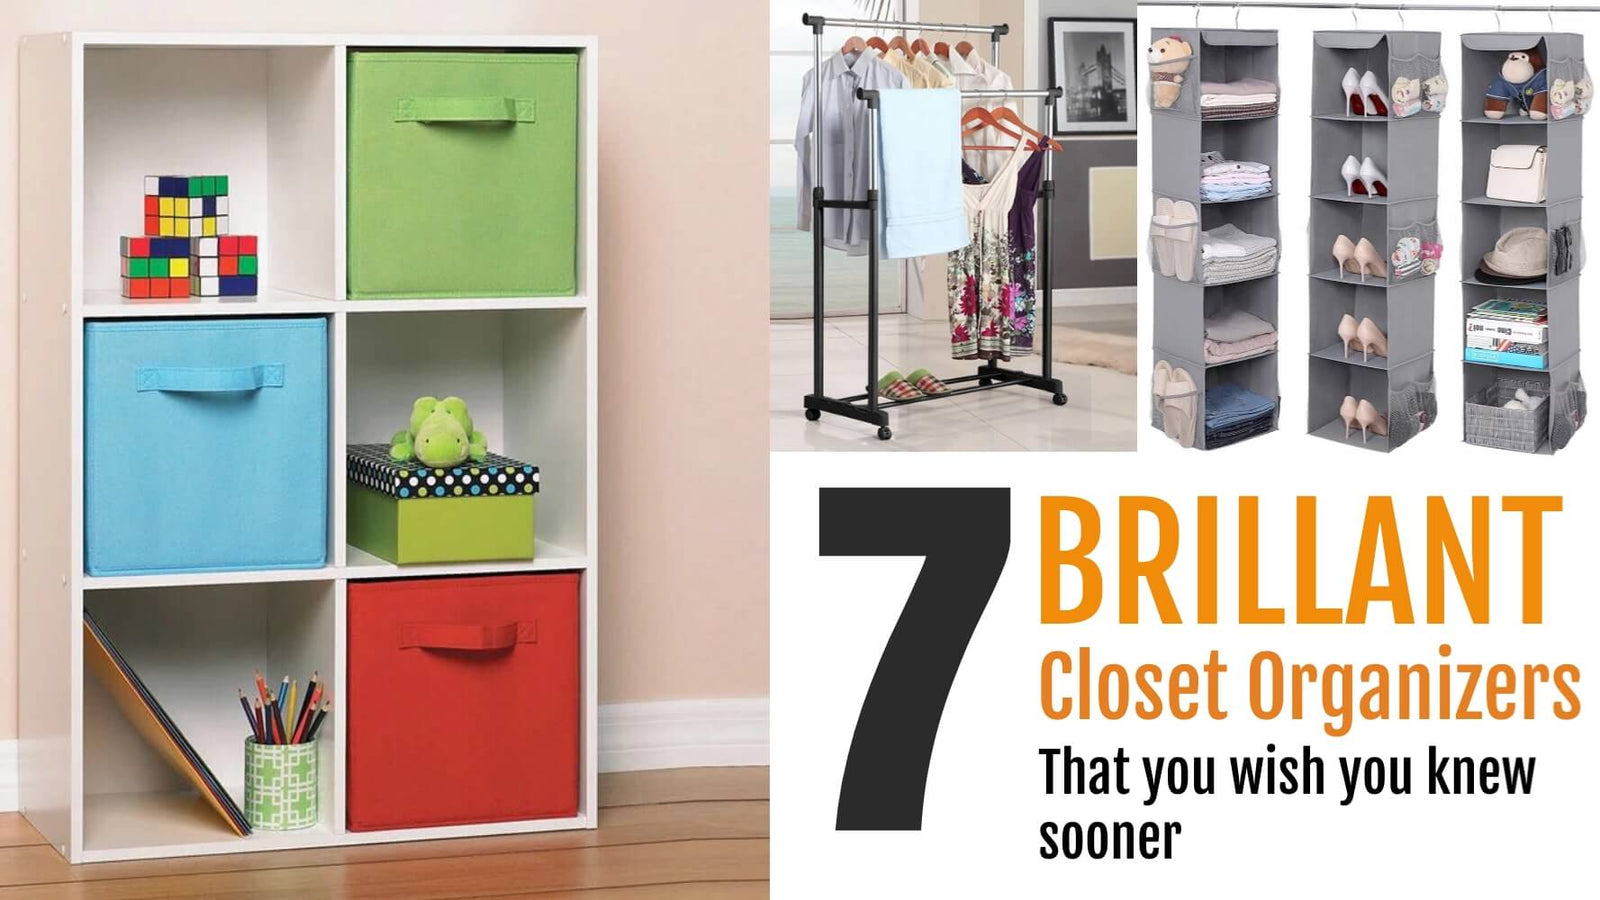 7 Genius Closet Organization Ideas 2020 Homewhis,Caramel Chocolate Brown Hair Color With Highlights